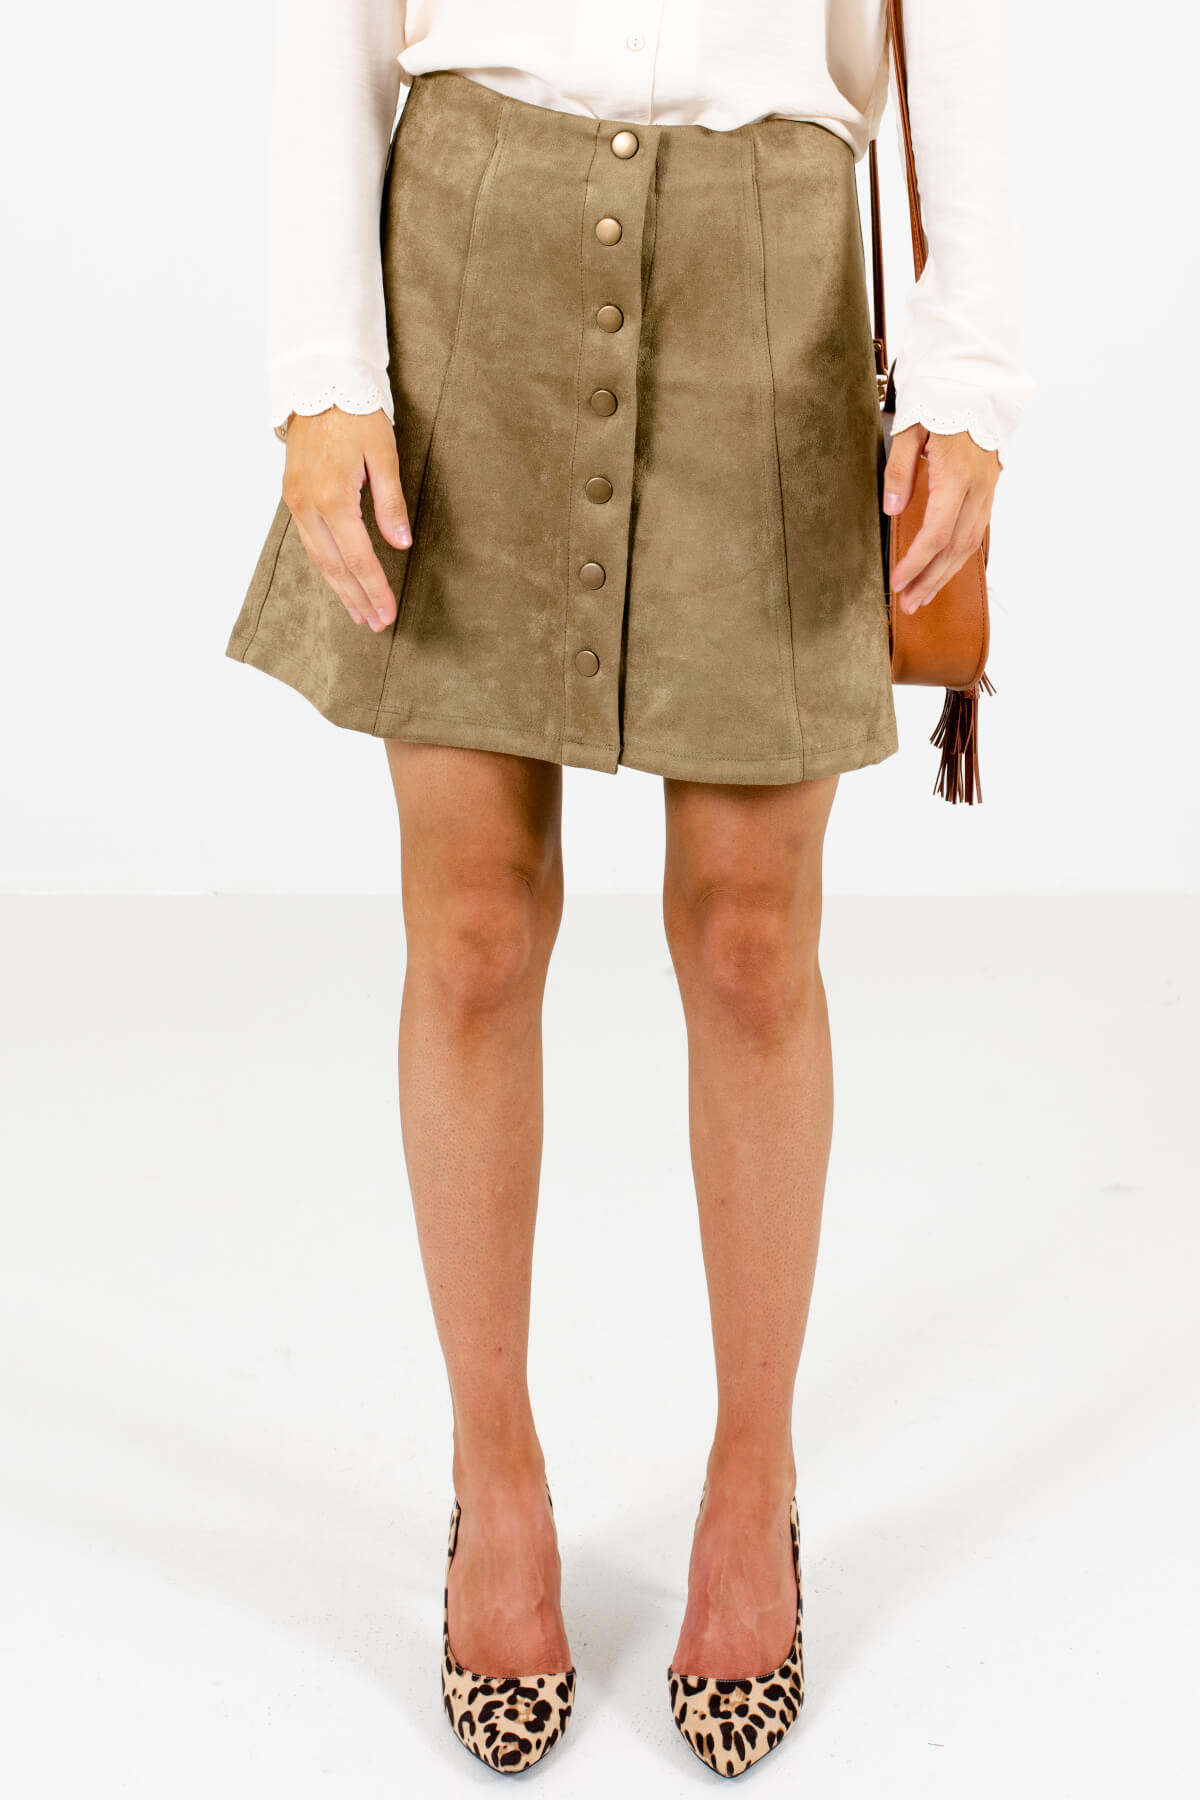 Olive Green High-Quality Suede Material Boutique Mini Skirts for Women